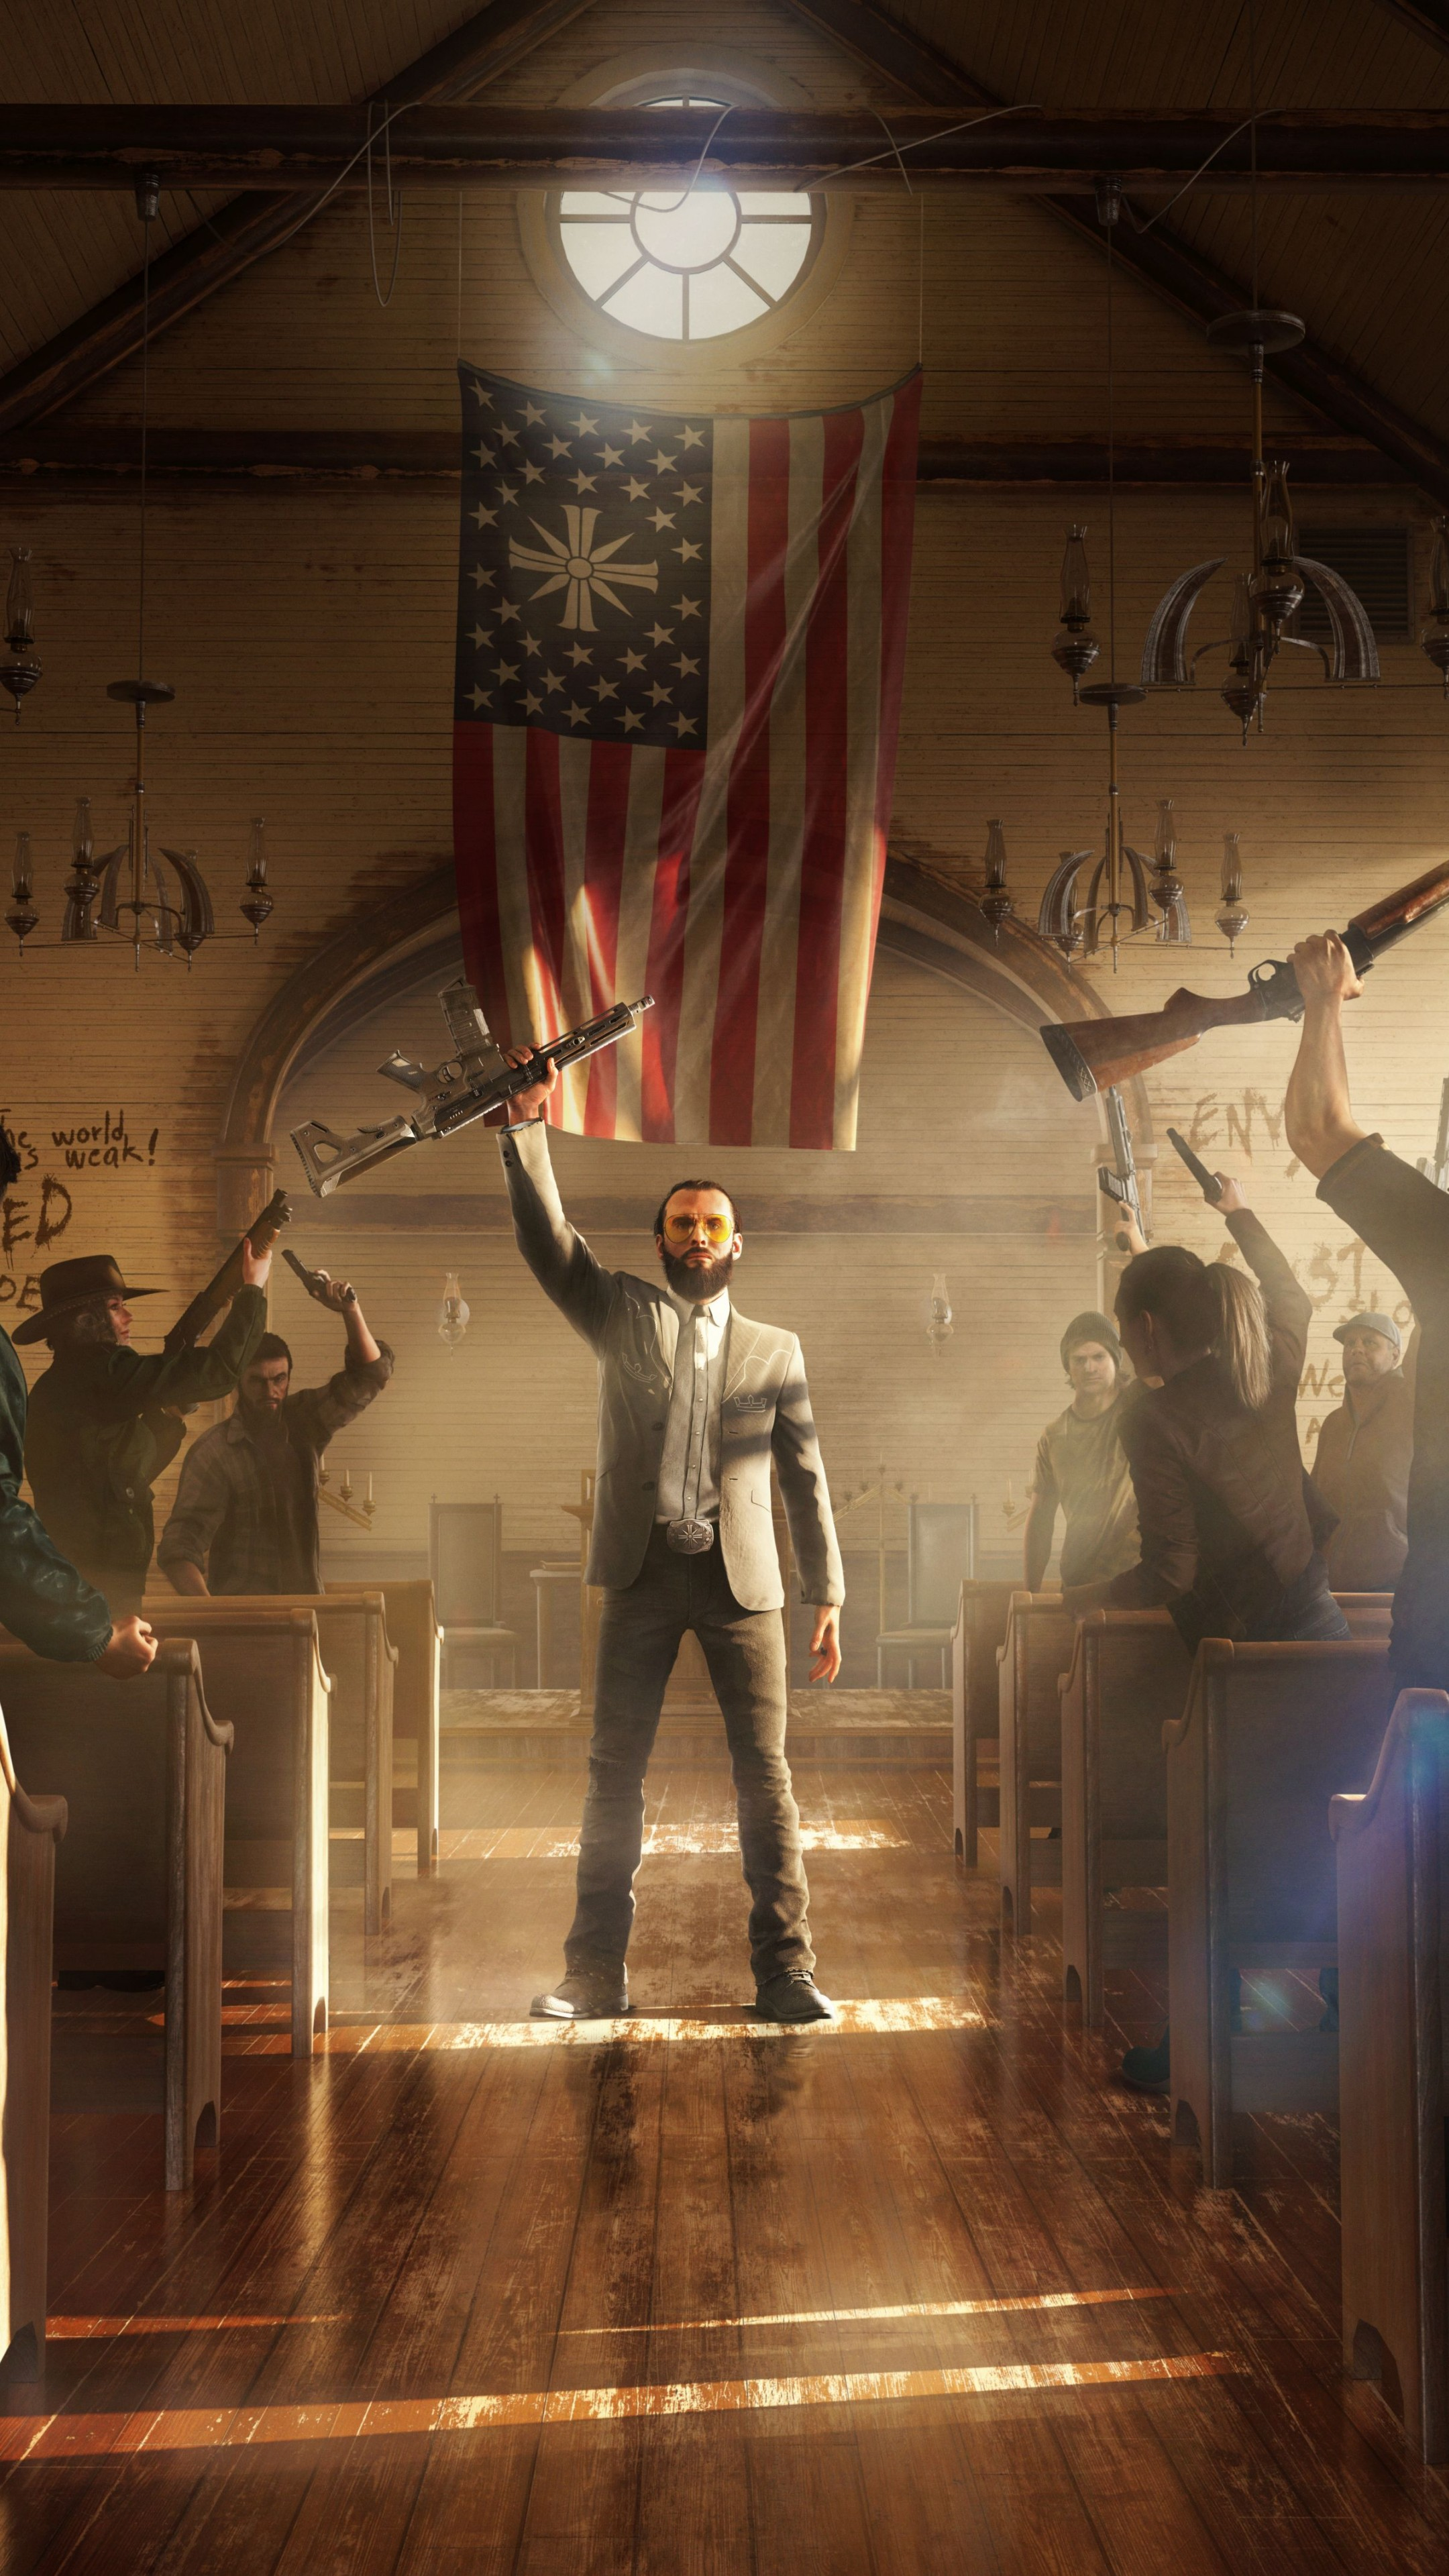 Wallpaper Far Cry 5 4k Hd E3 2017 Games 13860 Page 819